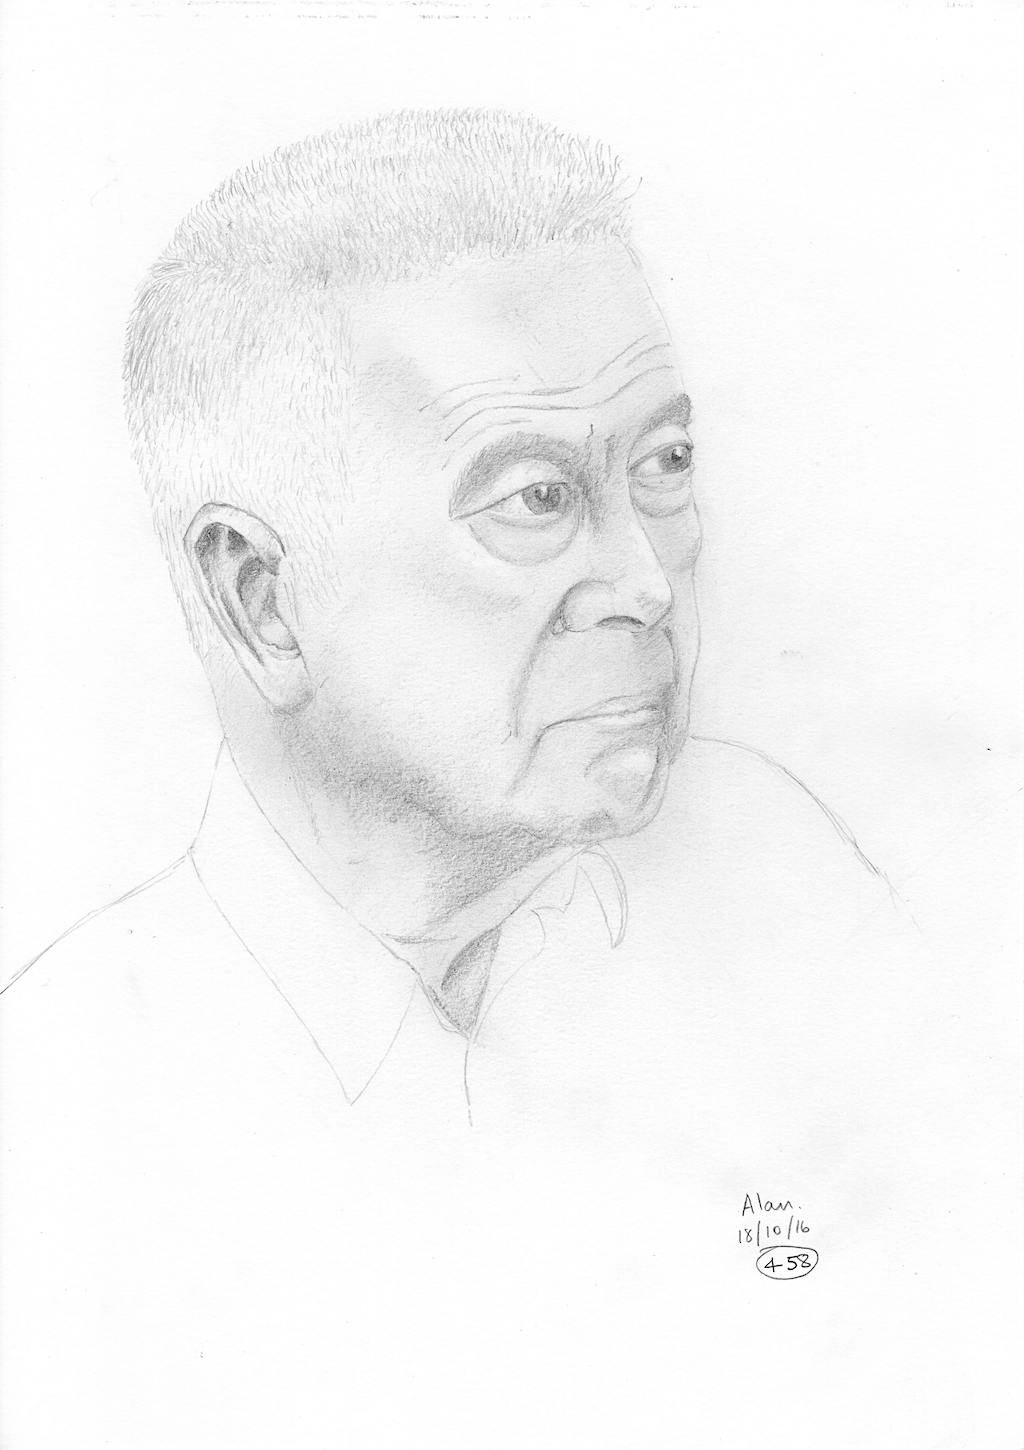 Sketch of Alan